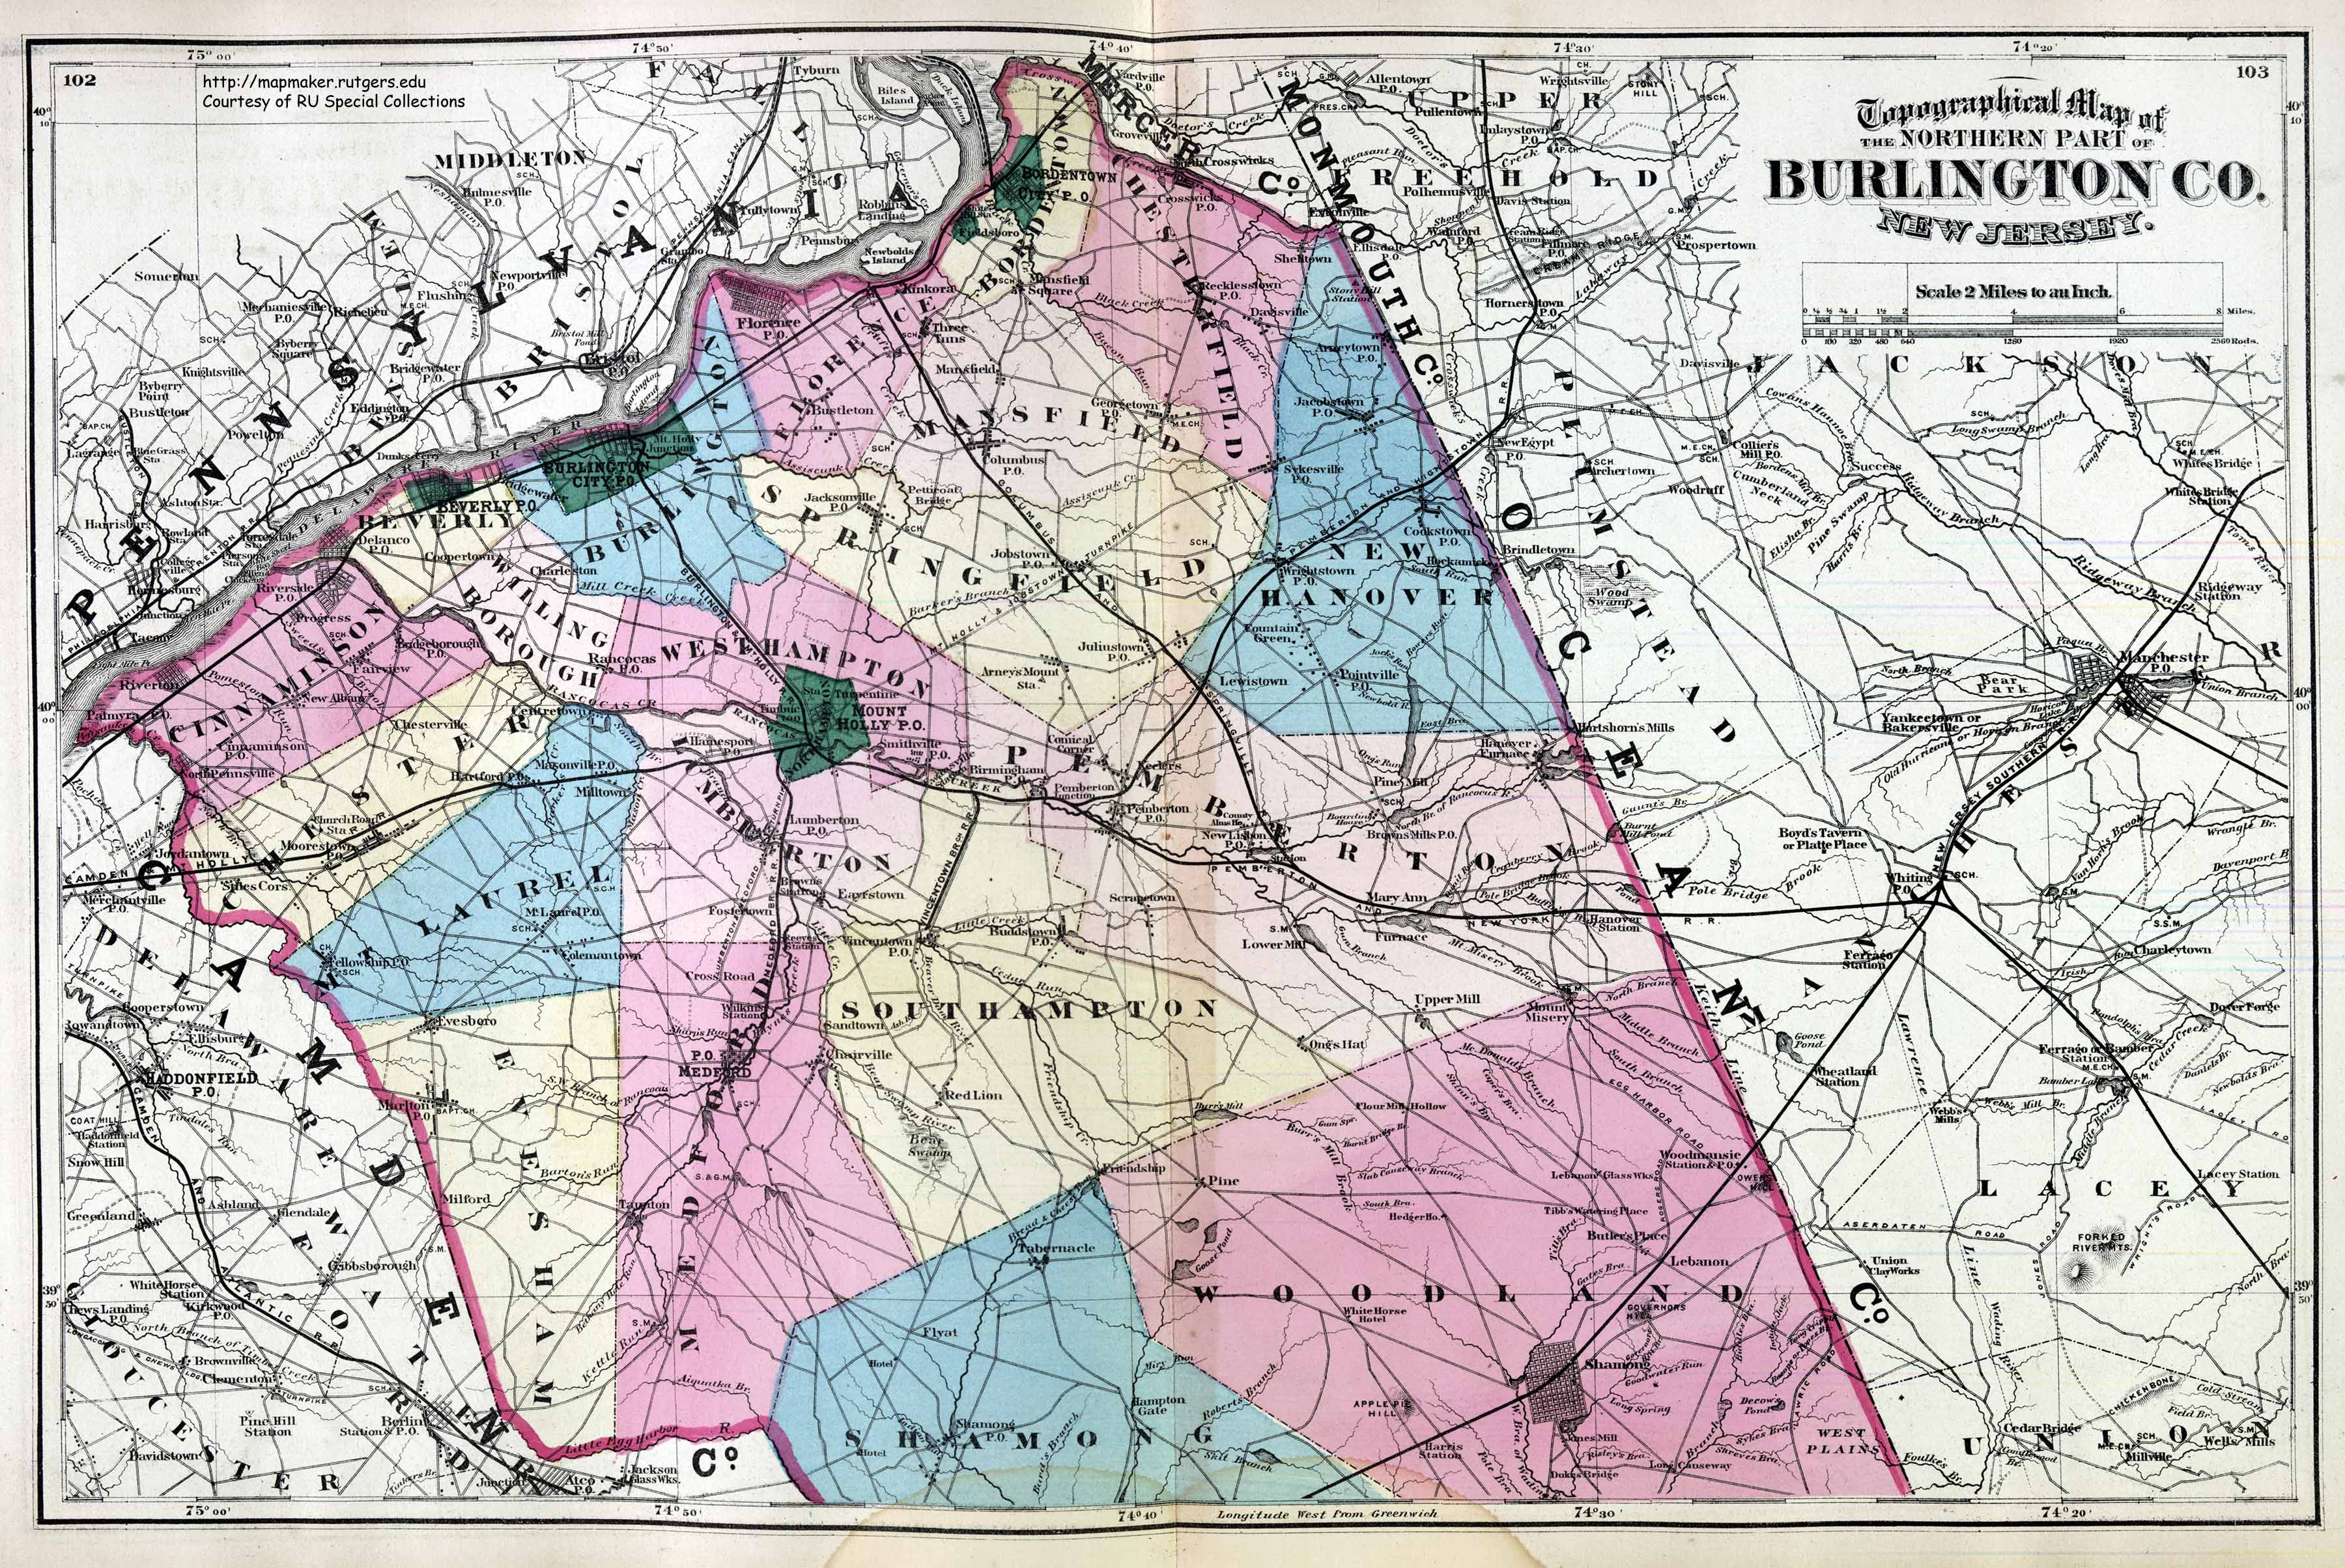 New Jersey Historical Maps BURLINGTON COUNTY NORTH